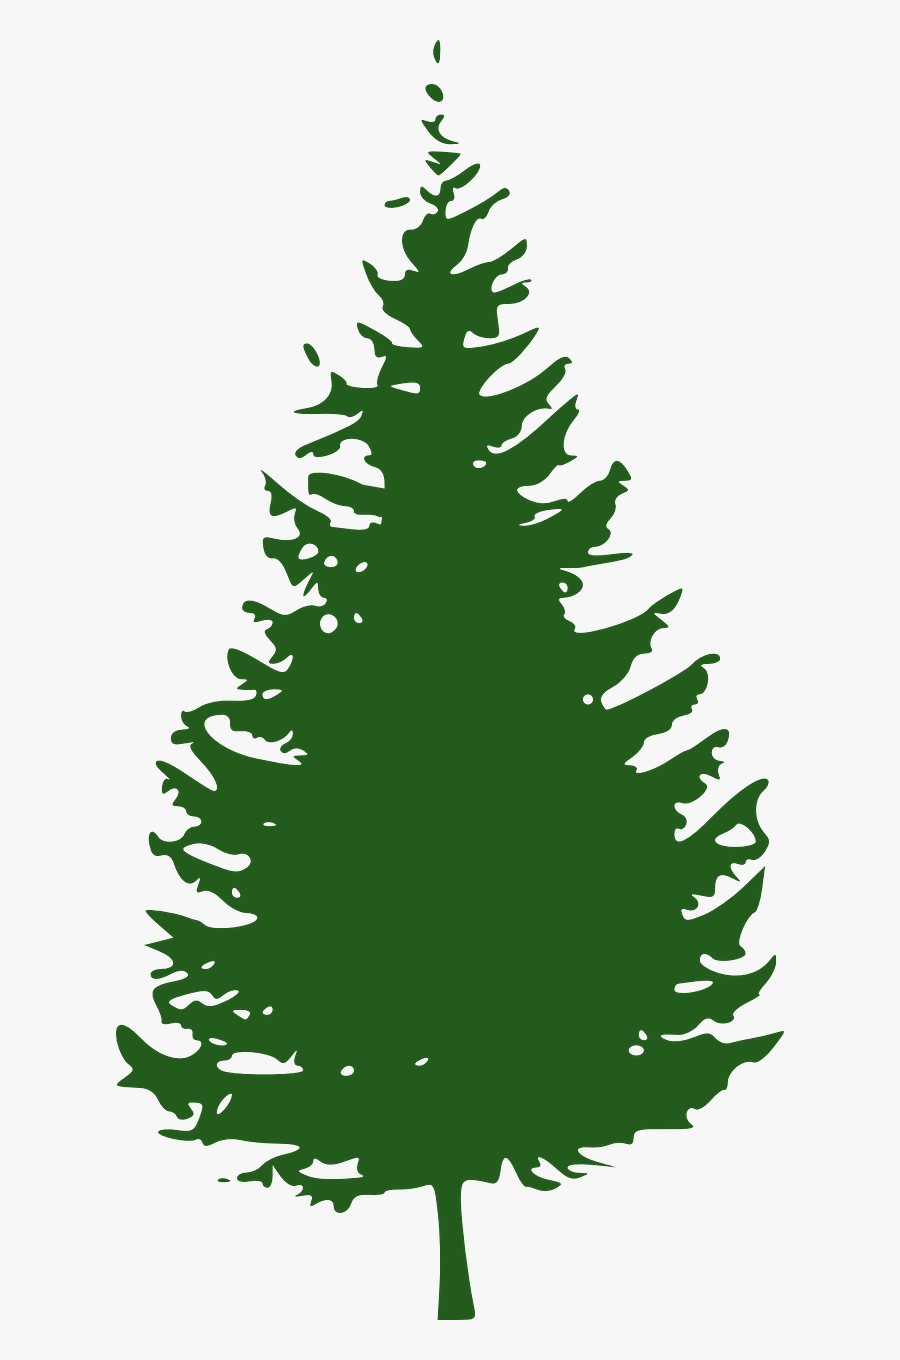 Transparent Forest Png - Pine Tree Clipart Free, Transparent Clipart